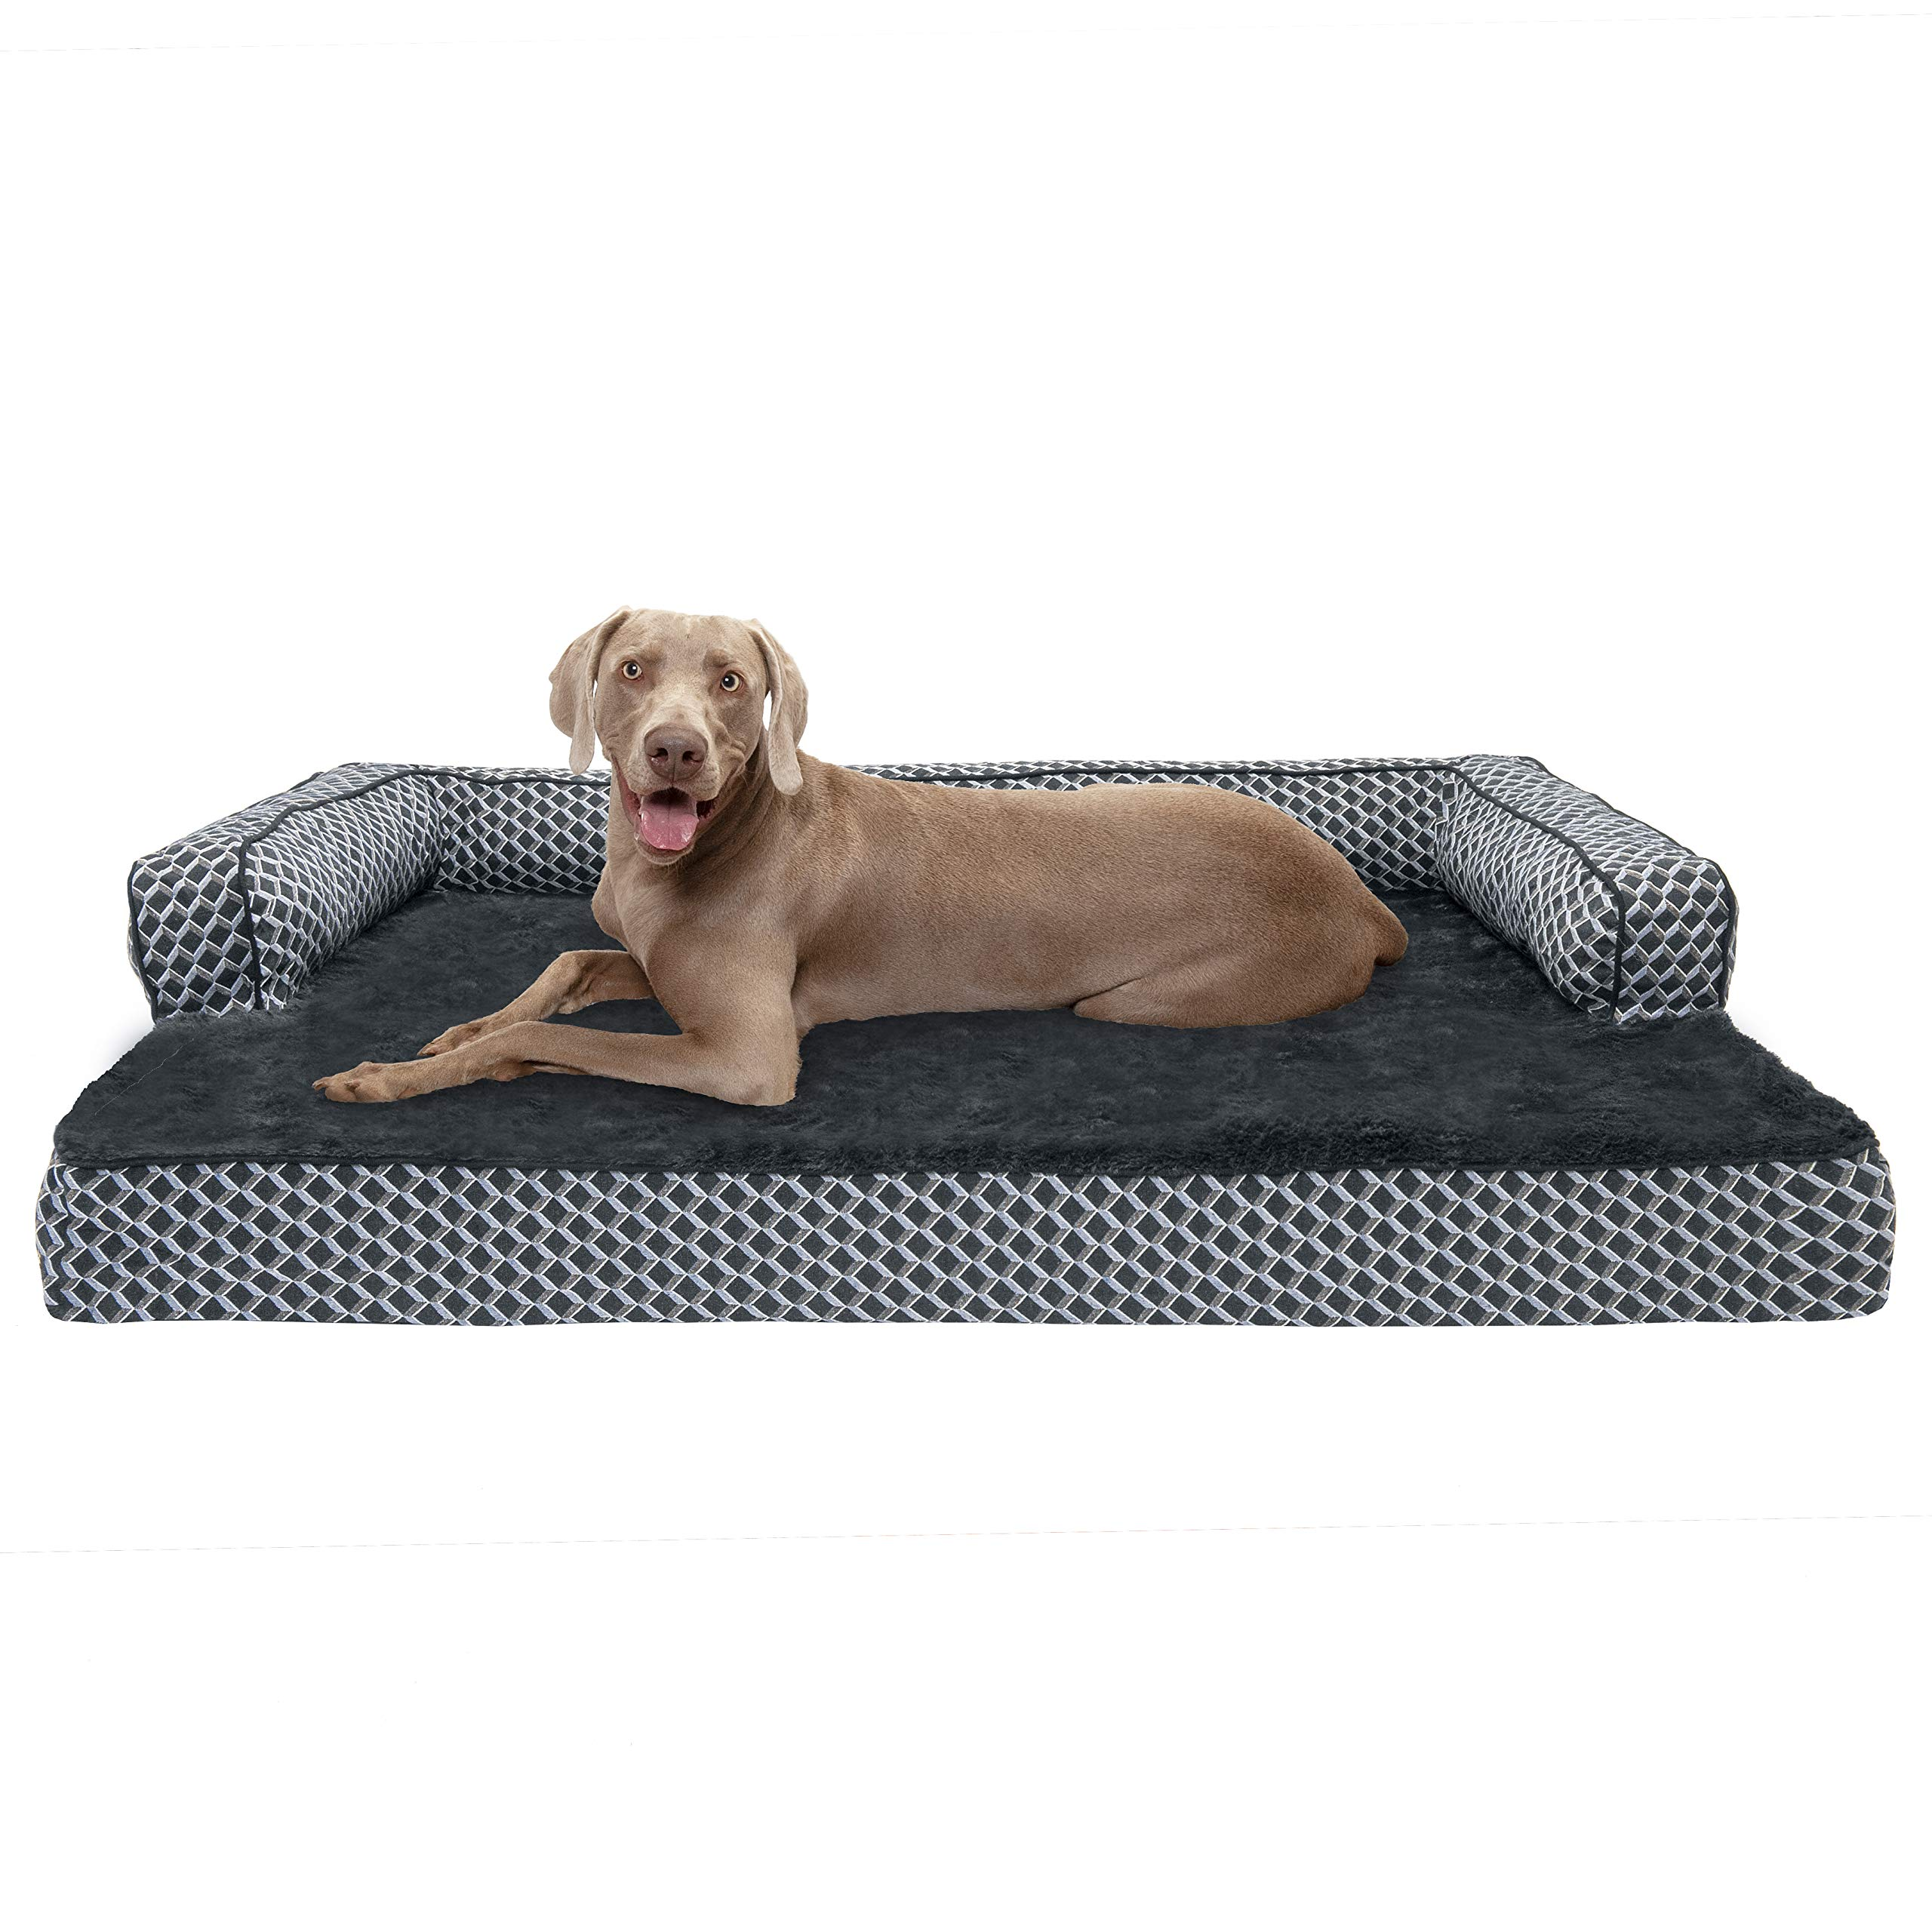 Furhaven Pet Dog Bed | Memory Foam Plush Faux Fur & Décor Comfy Couch Sofa-Style Living Room Couch Pet Bed for Dogs & Cats, Diamond Grey, Jumbo Plus